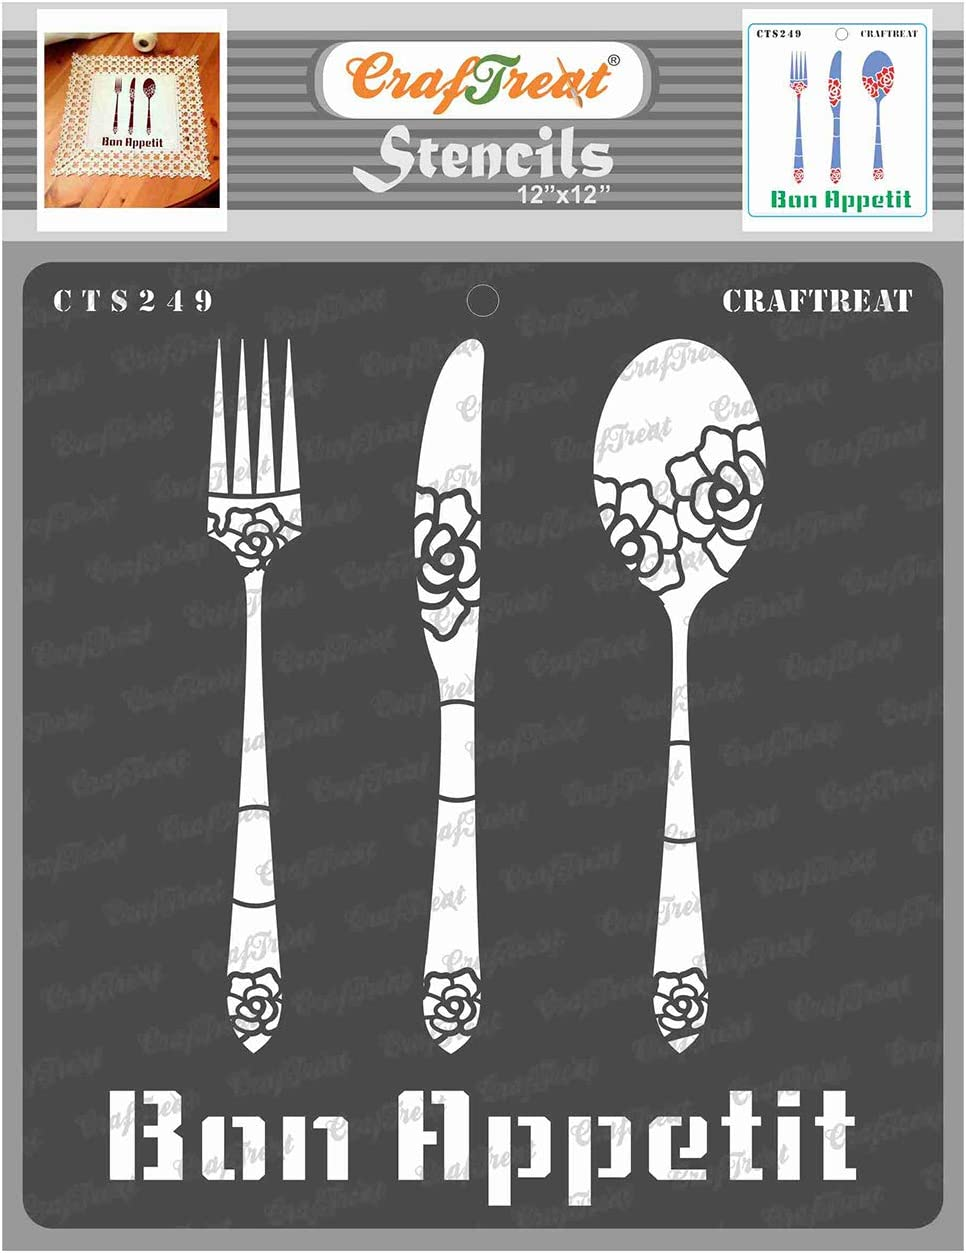 CrafTreat Kitchen Decor Stencils for Painting on Wood, Canvas, Paper, Fabric, Floor, Wall and Tile - Bon Appetit - 12x12 Inches - Reusable DIY Art and Craft Stencils - Kitchen Decor